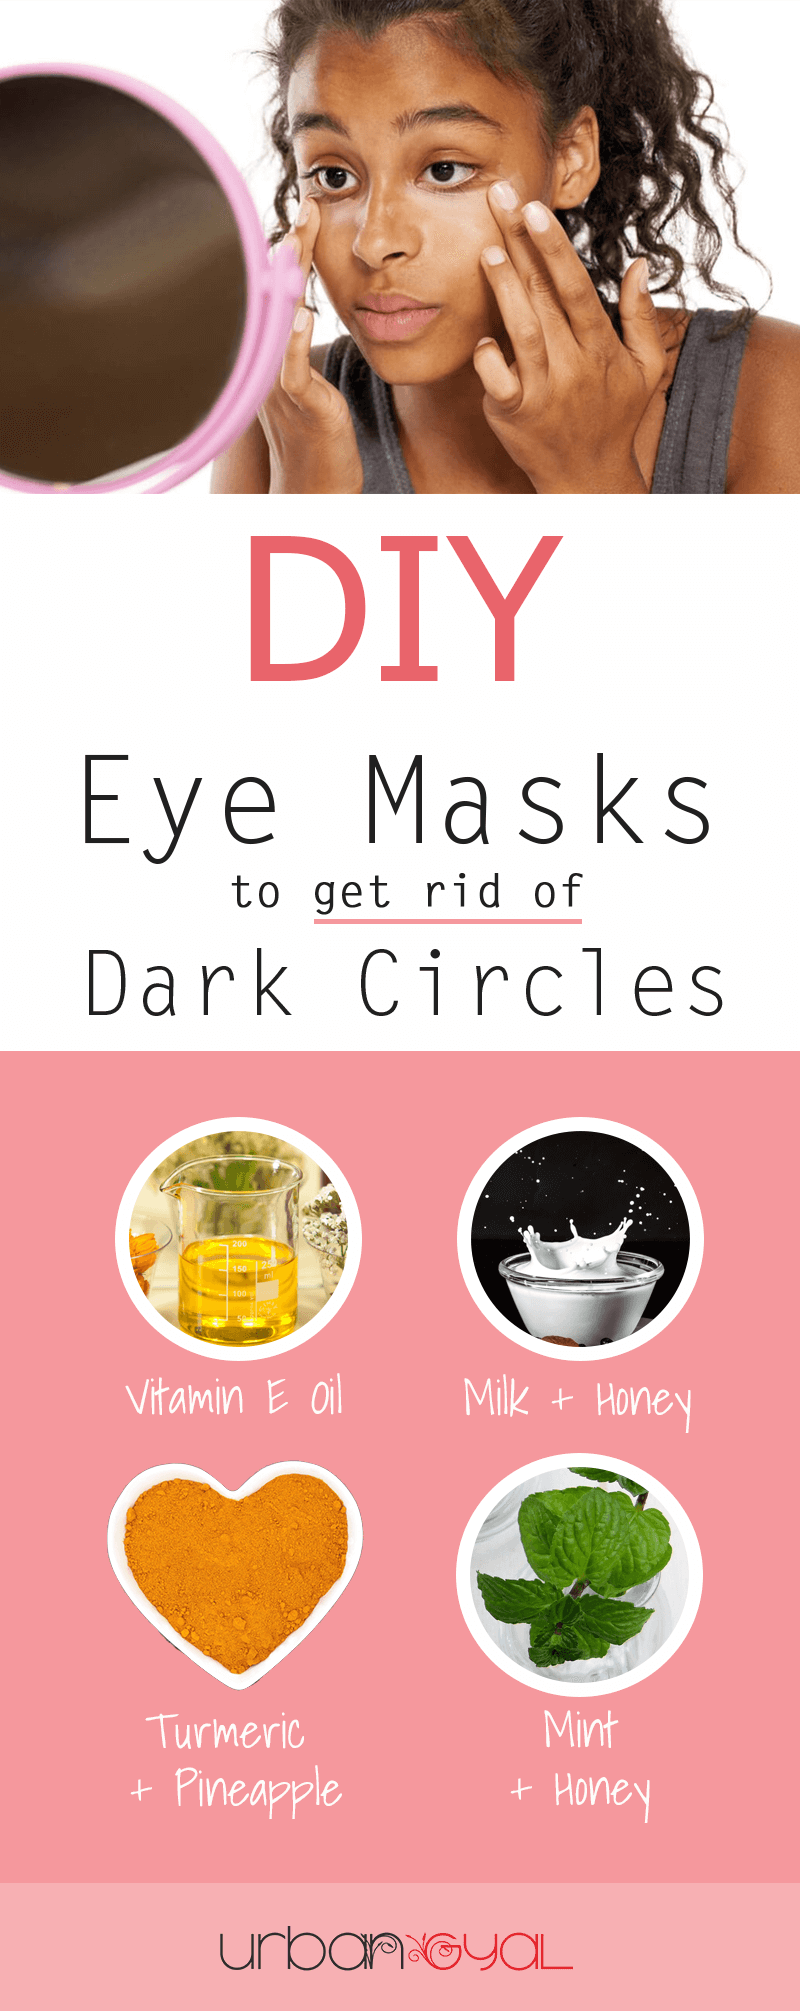 DIY Eye Masks for Dark Circles